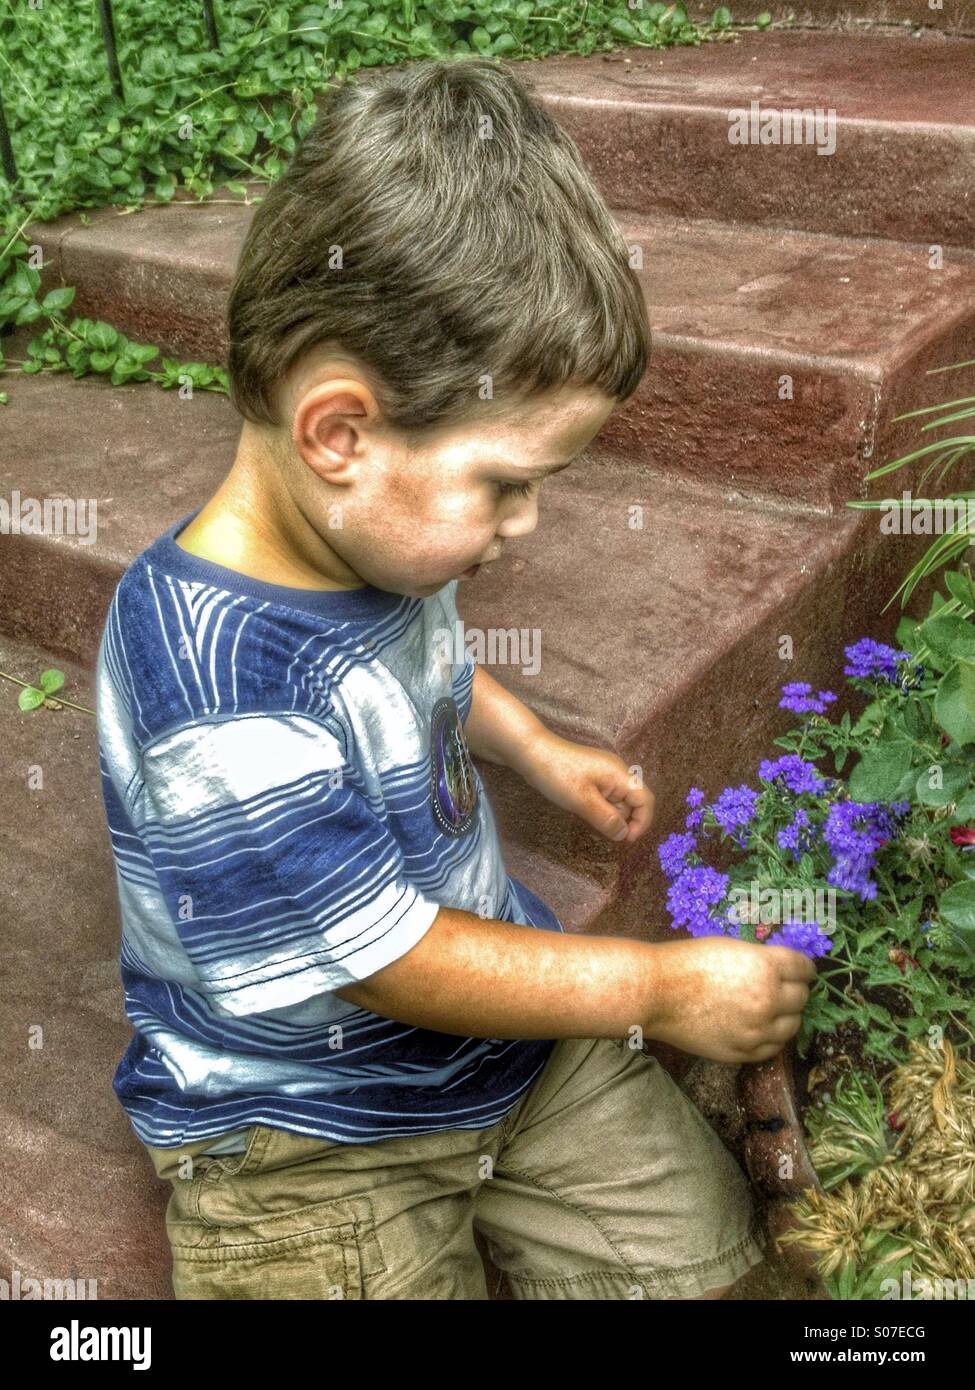 4 Year Boy Bedroom Decorating Ideas: 4 Year Old Boy Discovering Or Picking A Flower. HDR Stock